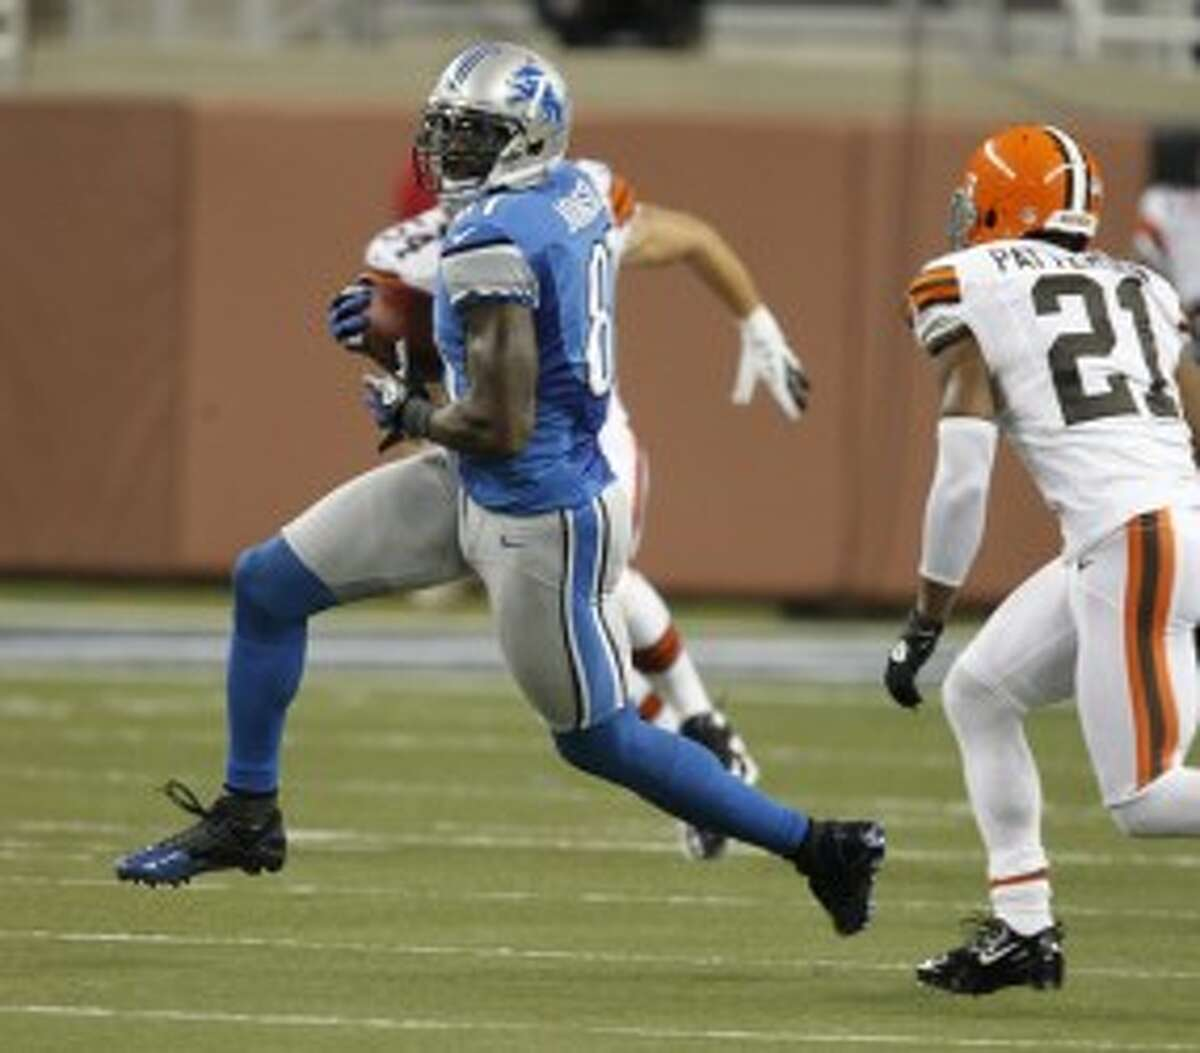 Lions wide receiver Calvin Johnson hauls in a catch in an NFL preseason loss to the Browns at Ford Field in Detroit on Friday. (Julian H. Gonzalez/Detroit Free Press/MCT)